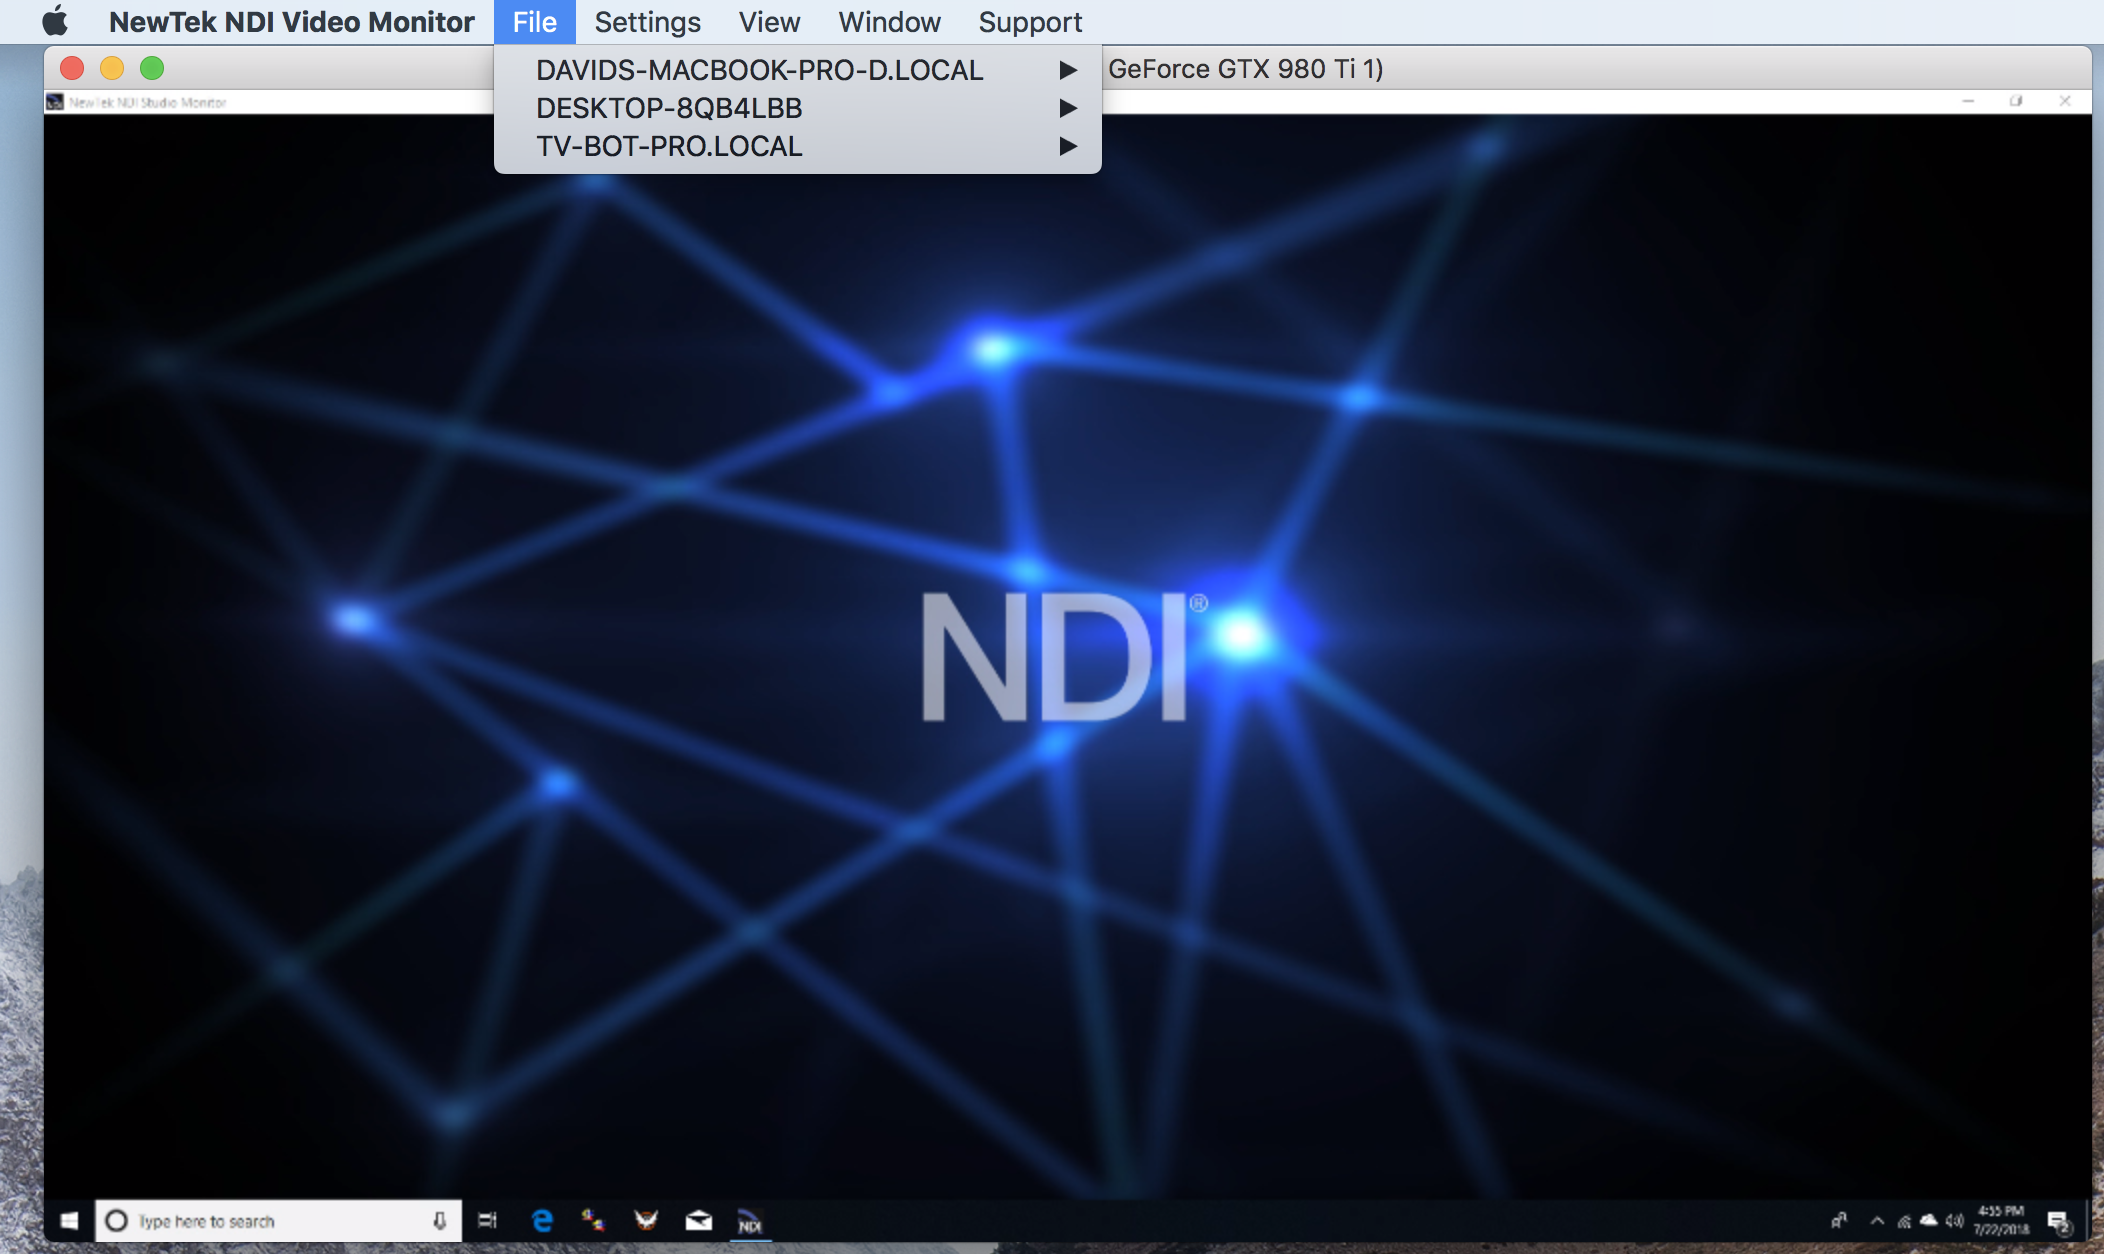 Though not required, NewTek provides two  useful free utilities : The NDI Video Monitor and the NDI Scan Converter.